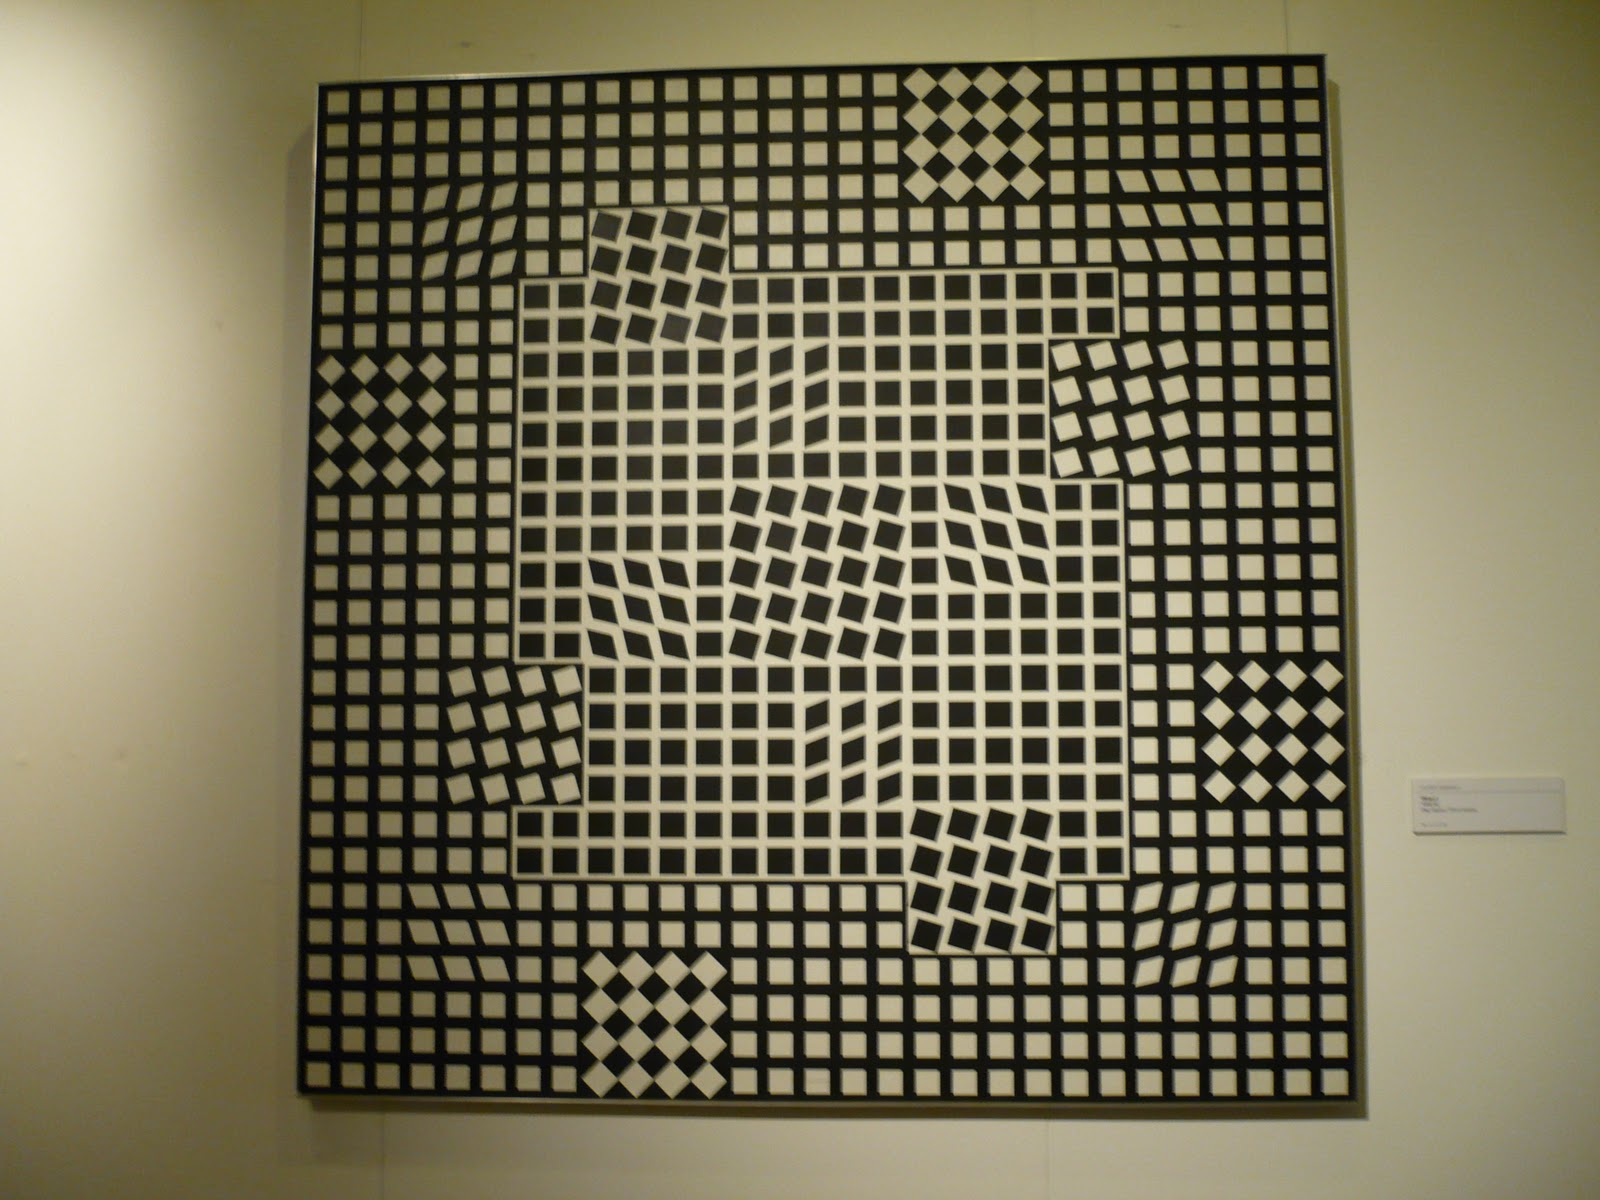 Displaying 15> Images For - Victor Vasarely Zebra...: galleryhip.com/victor-vasarely-zebra.html